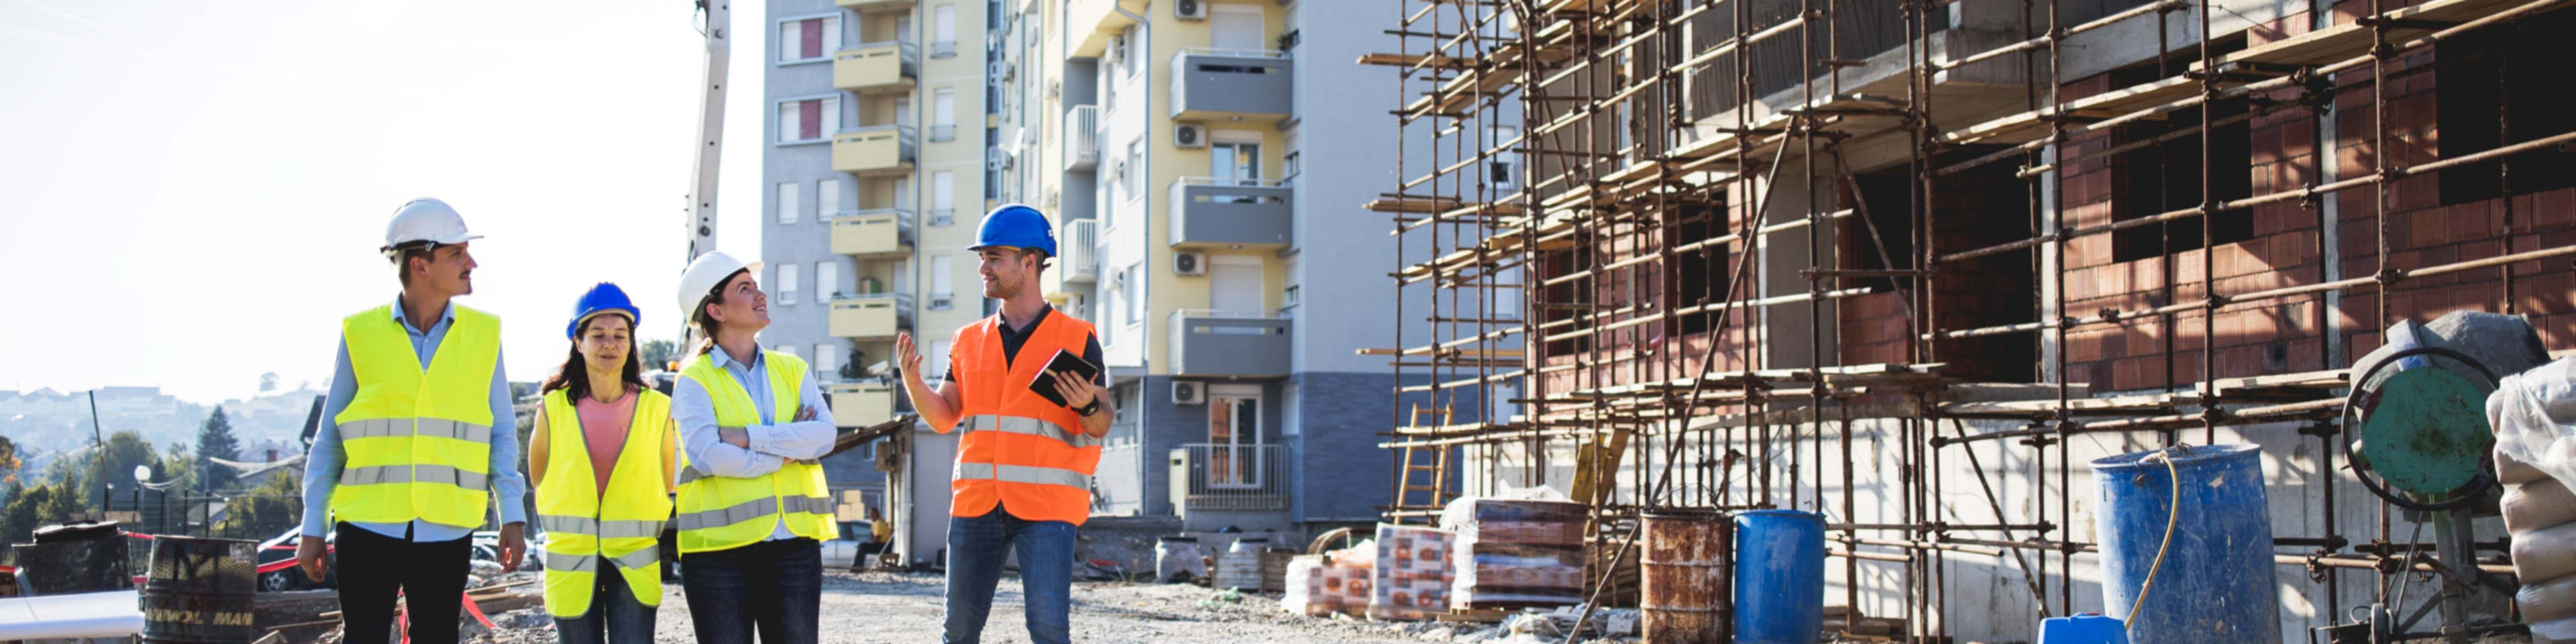 How to start a construction business: 7 things to consider